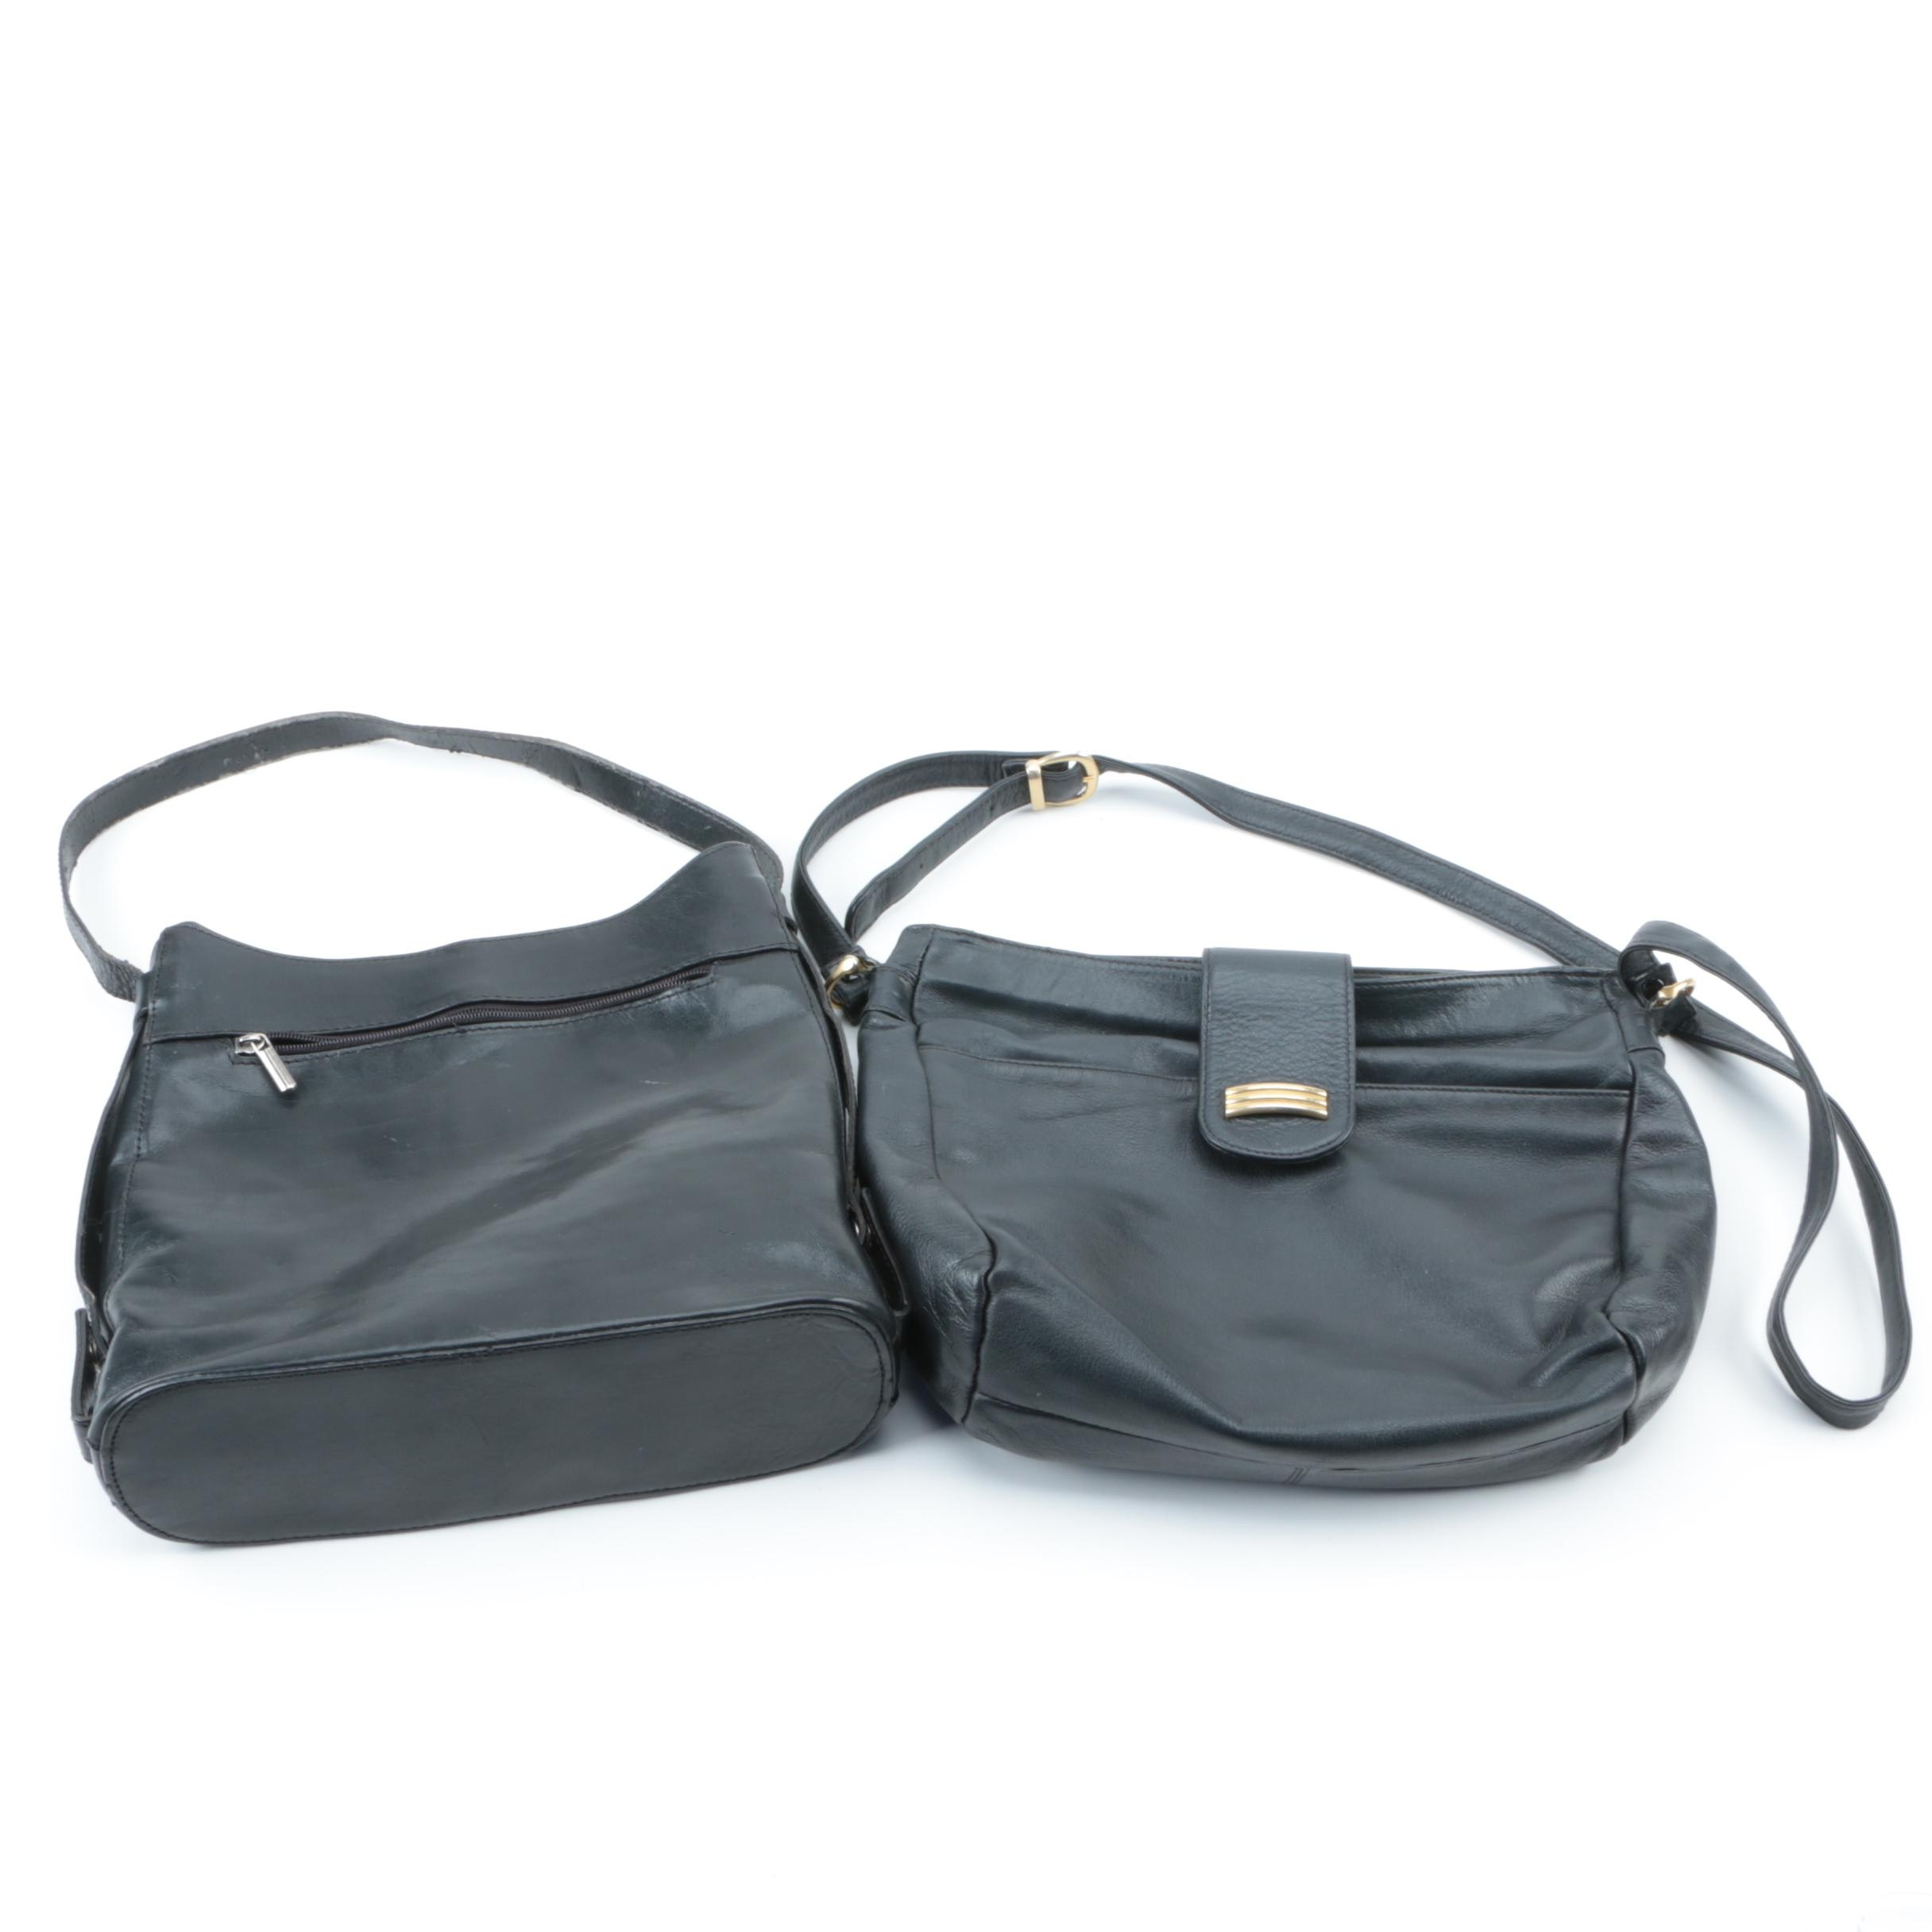 Vintage Black Leather Shoulder Bags With Lord & Taylor